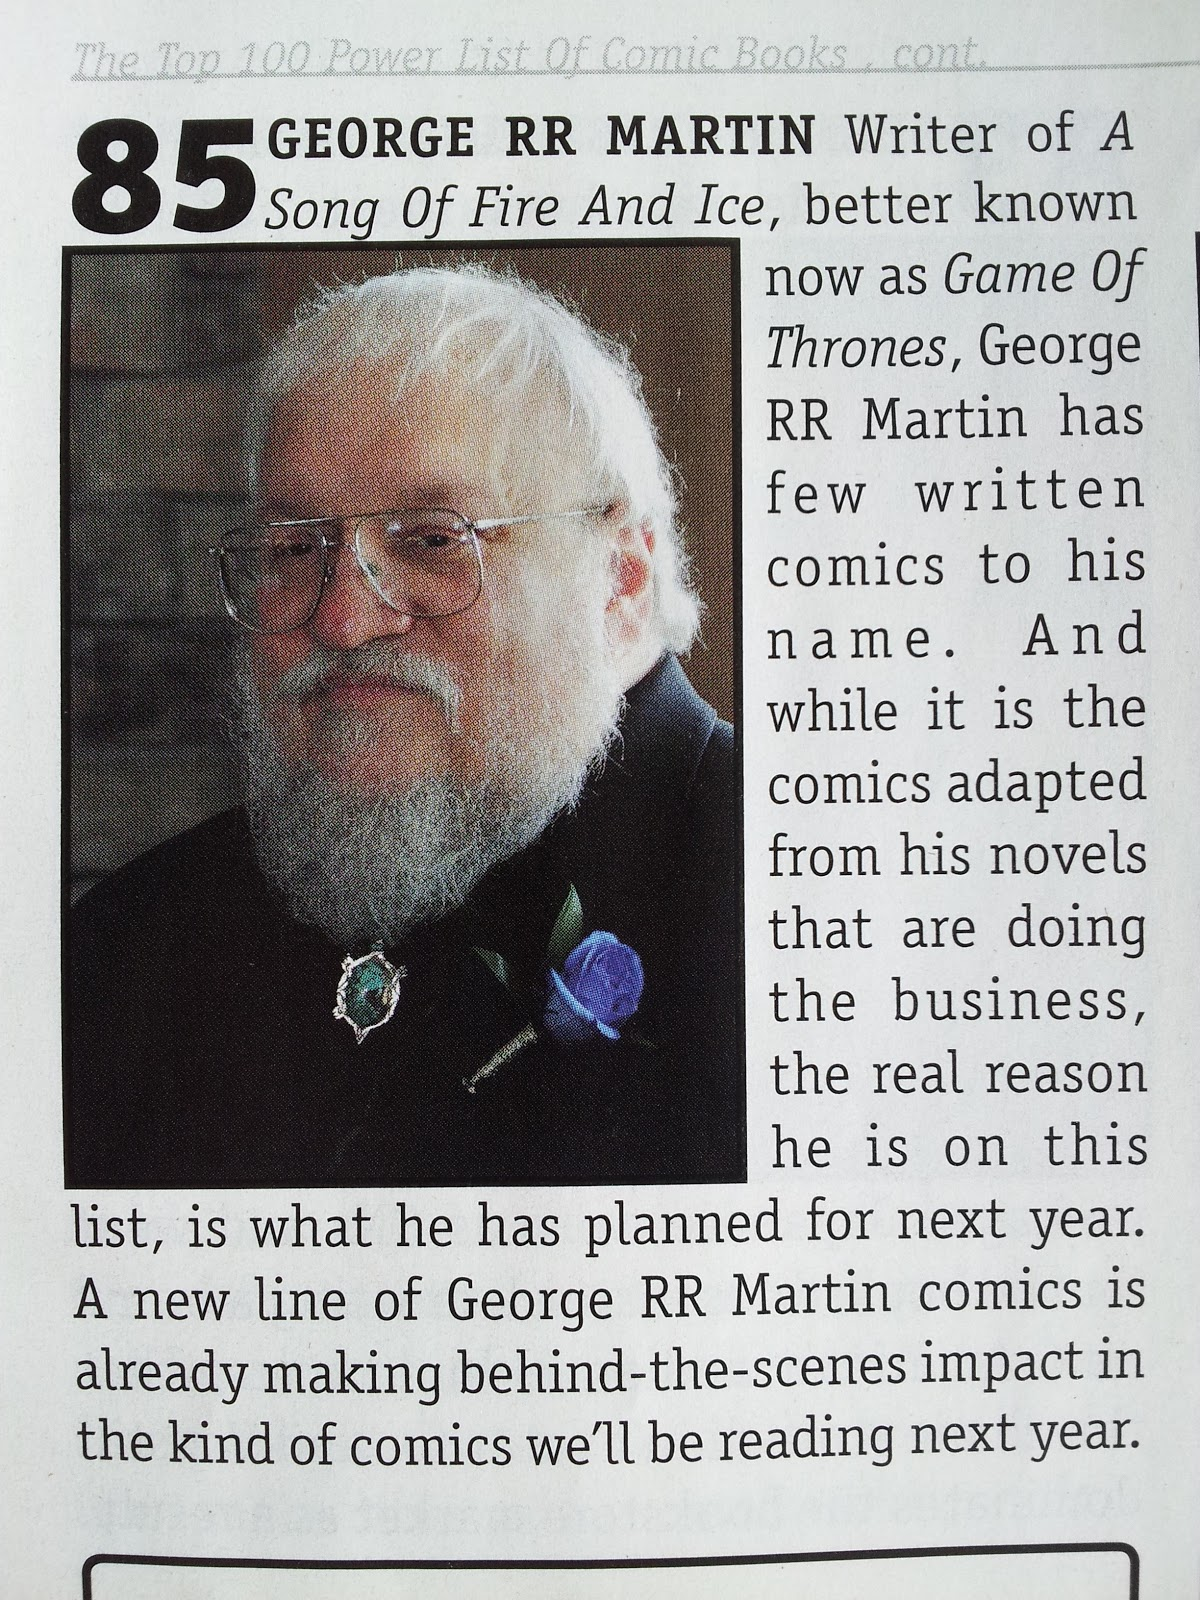 George Rr Martin Libros Game Of Thrones All Things Valiant Bleeding Cool Magazine Top 100 Most